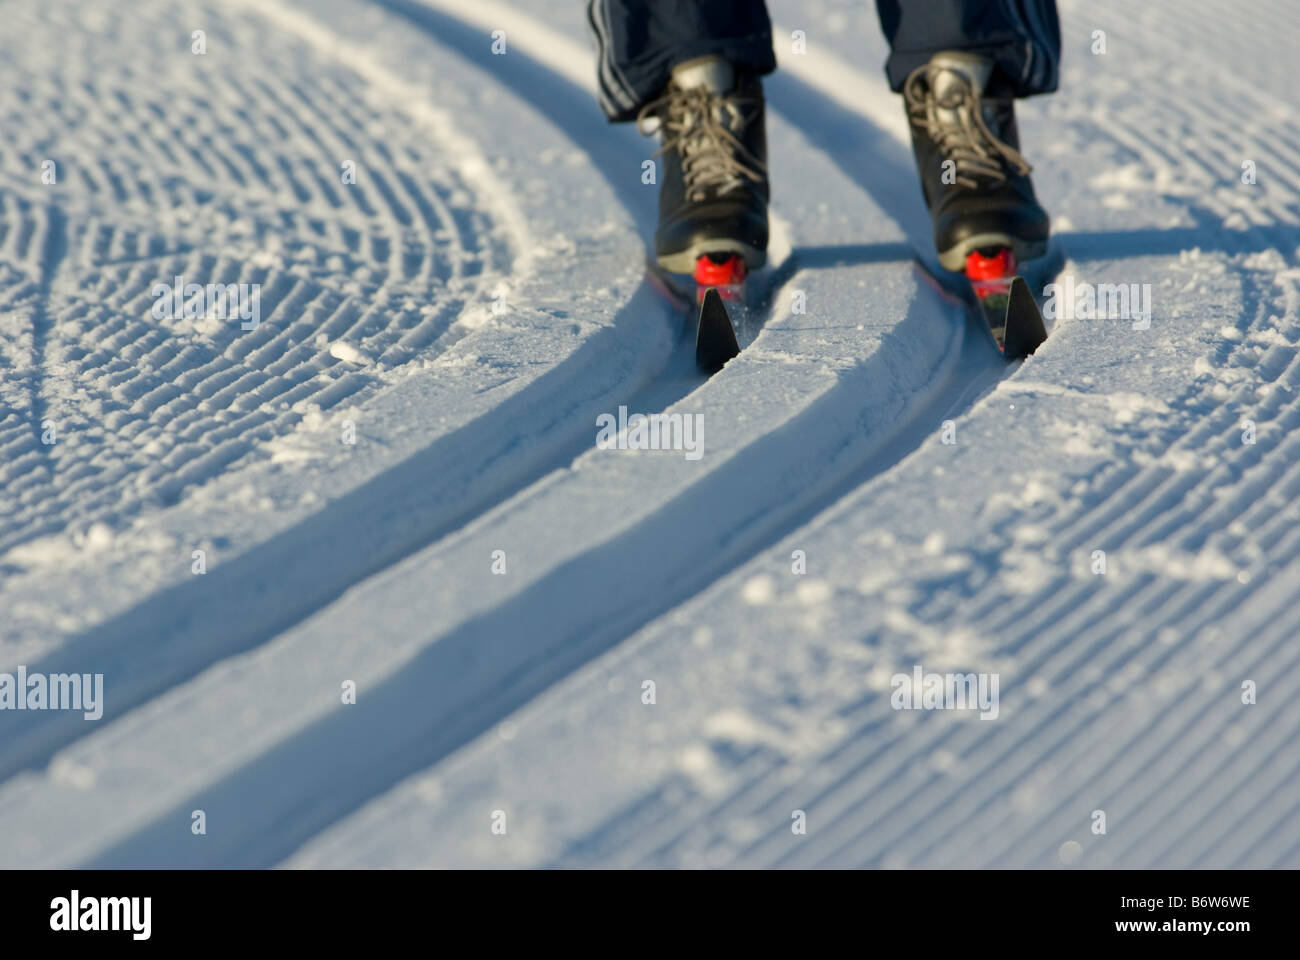 Skier on piste photographed so that only skis and ski boots are seen - Stock Image